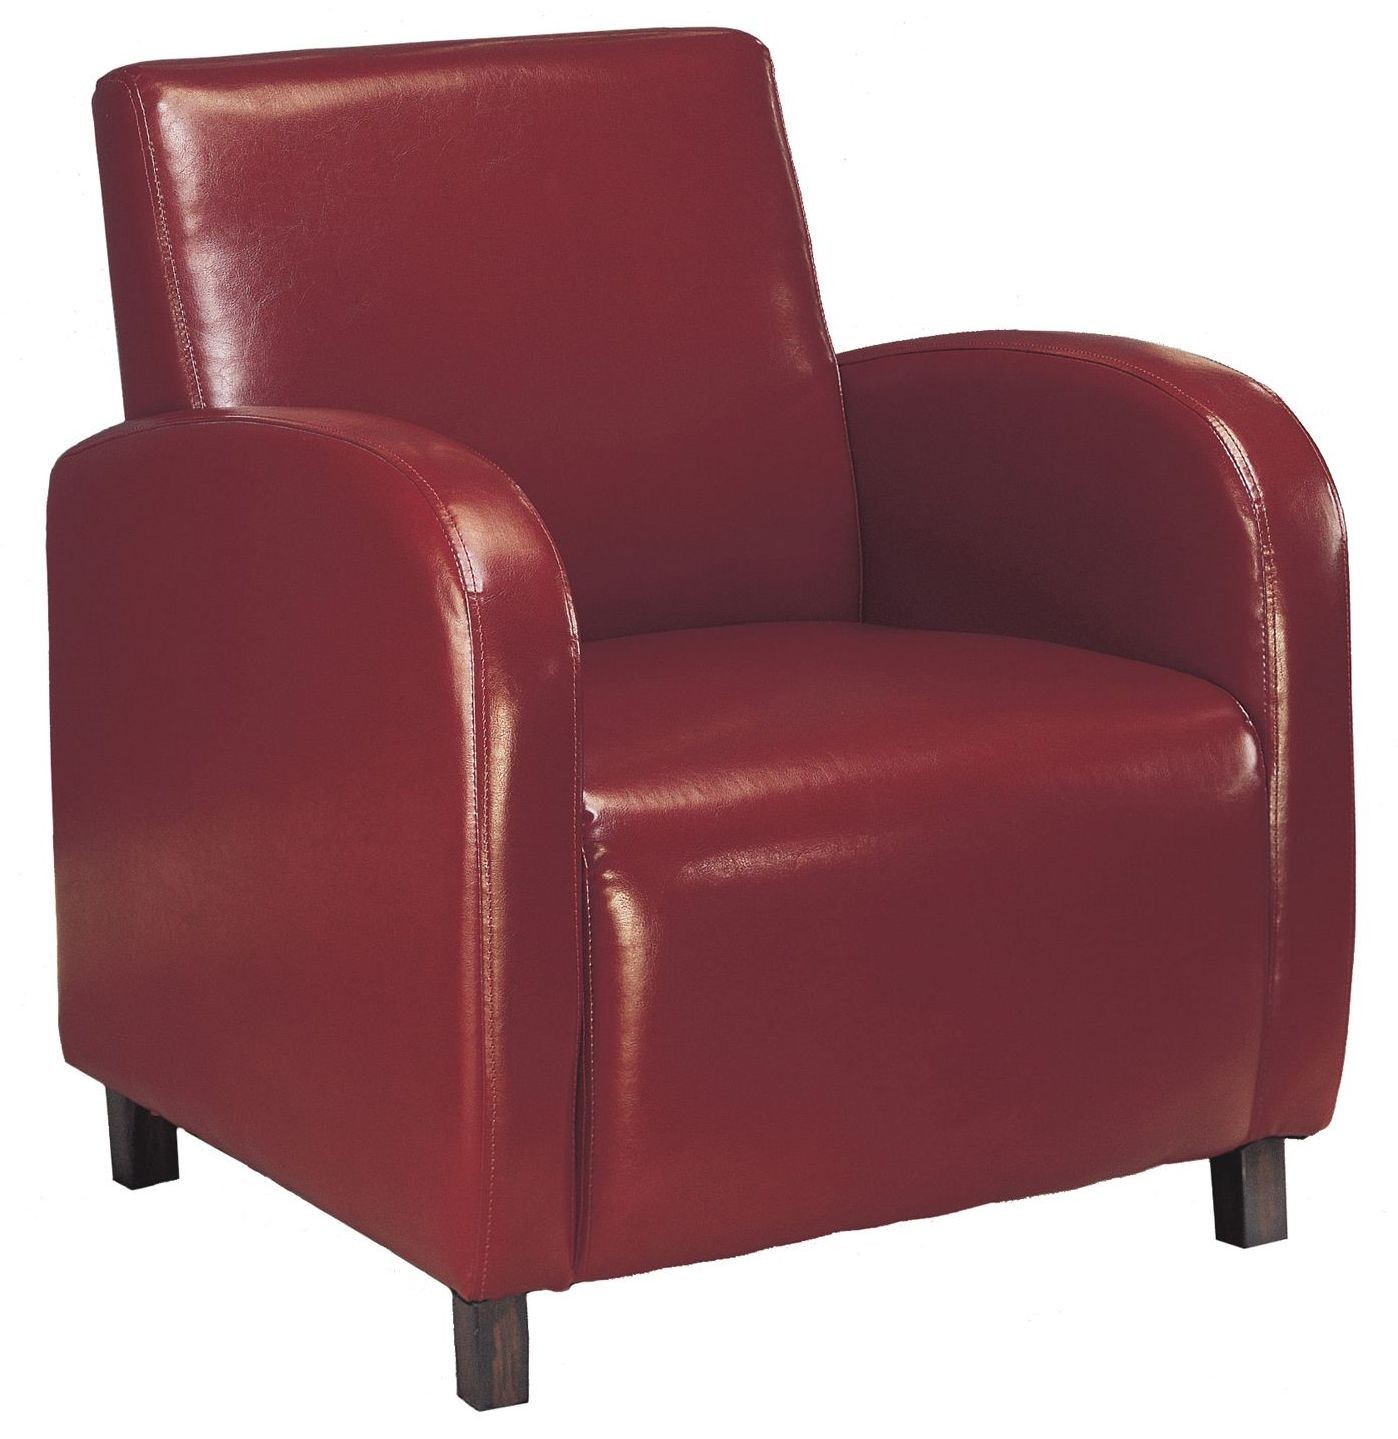 8051 Burgundy Accent Chair From Monarch I 8051 Coleman